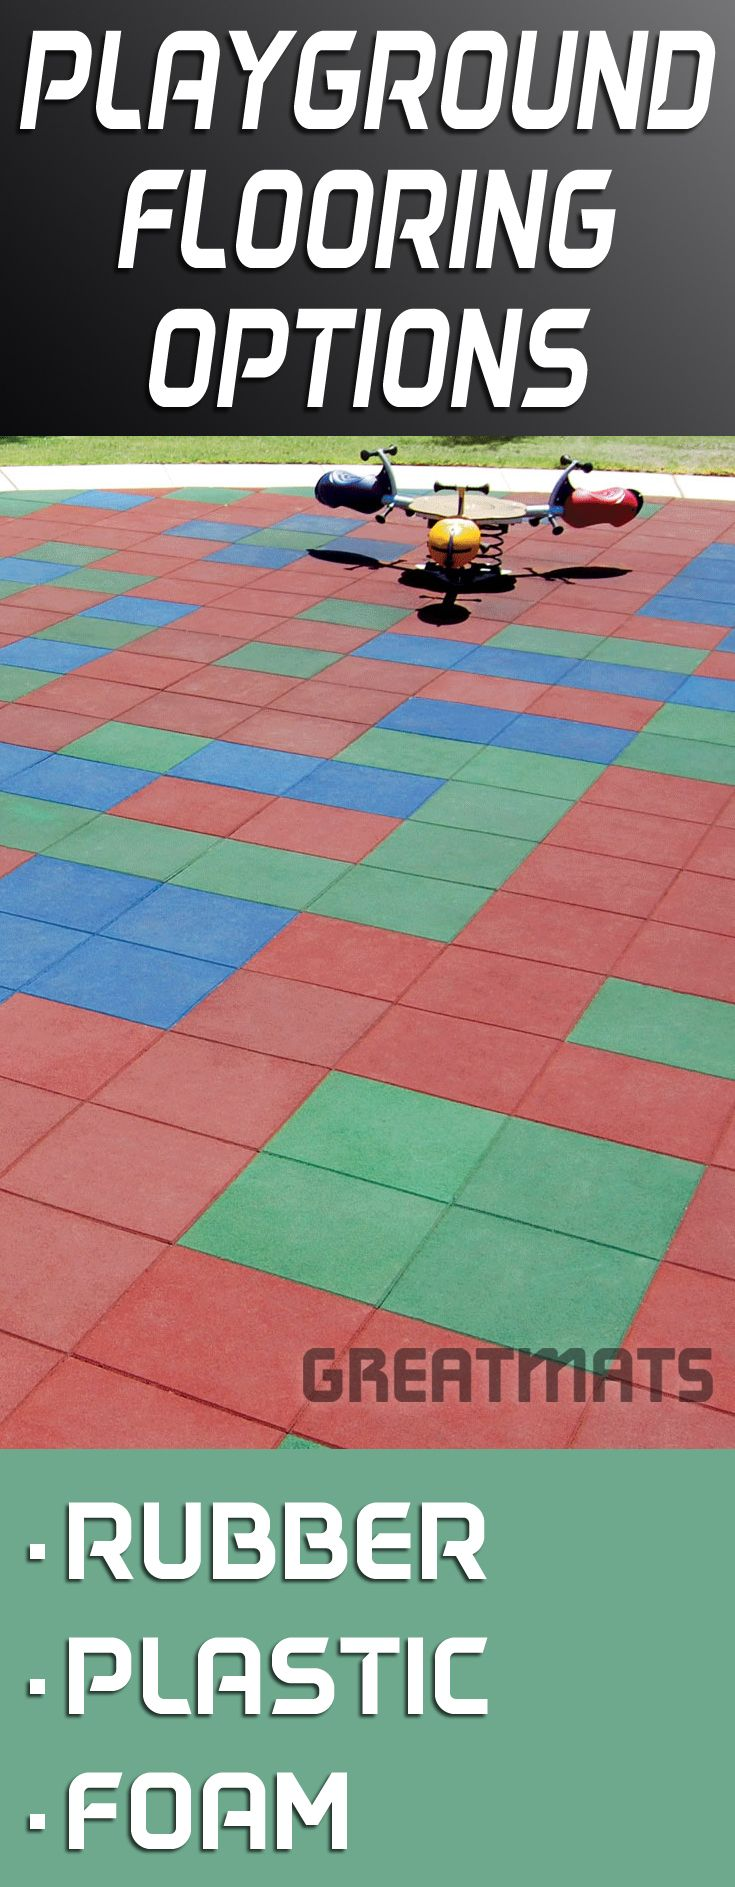 Greatmats offers one of the largest selections of playground flooring tiles available in rubber, plastic or foam materials.